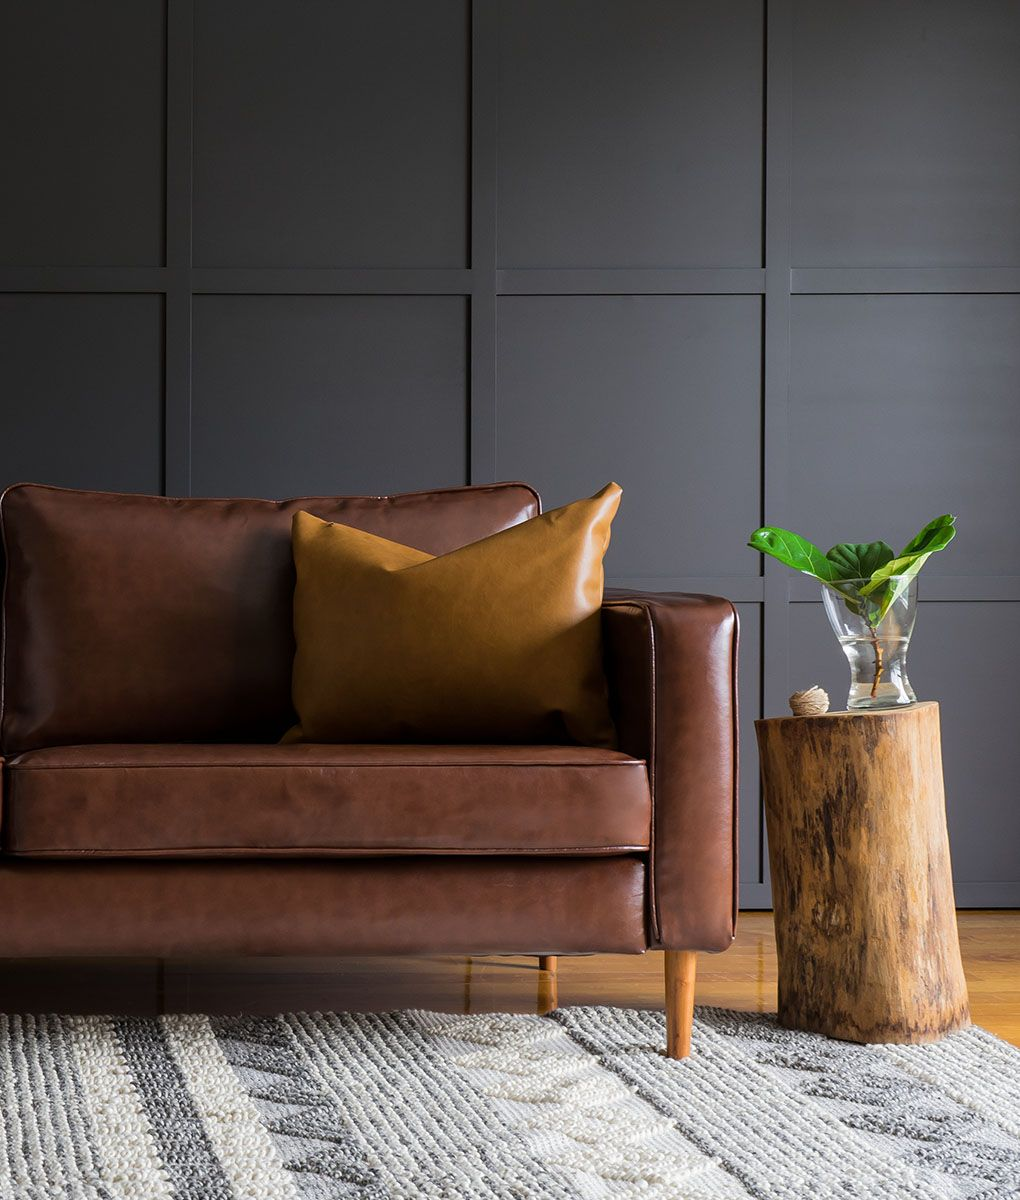 Ikea Karlstad 3 Seater Sofa Covered With Urbanskin Chestnut Bycast Leather Collection Slipcover From Comfort W Ikea Sofa Covers Leather Sofa Covers Couch Decor